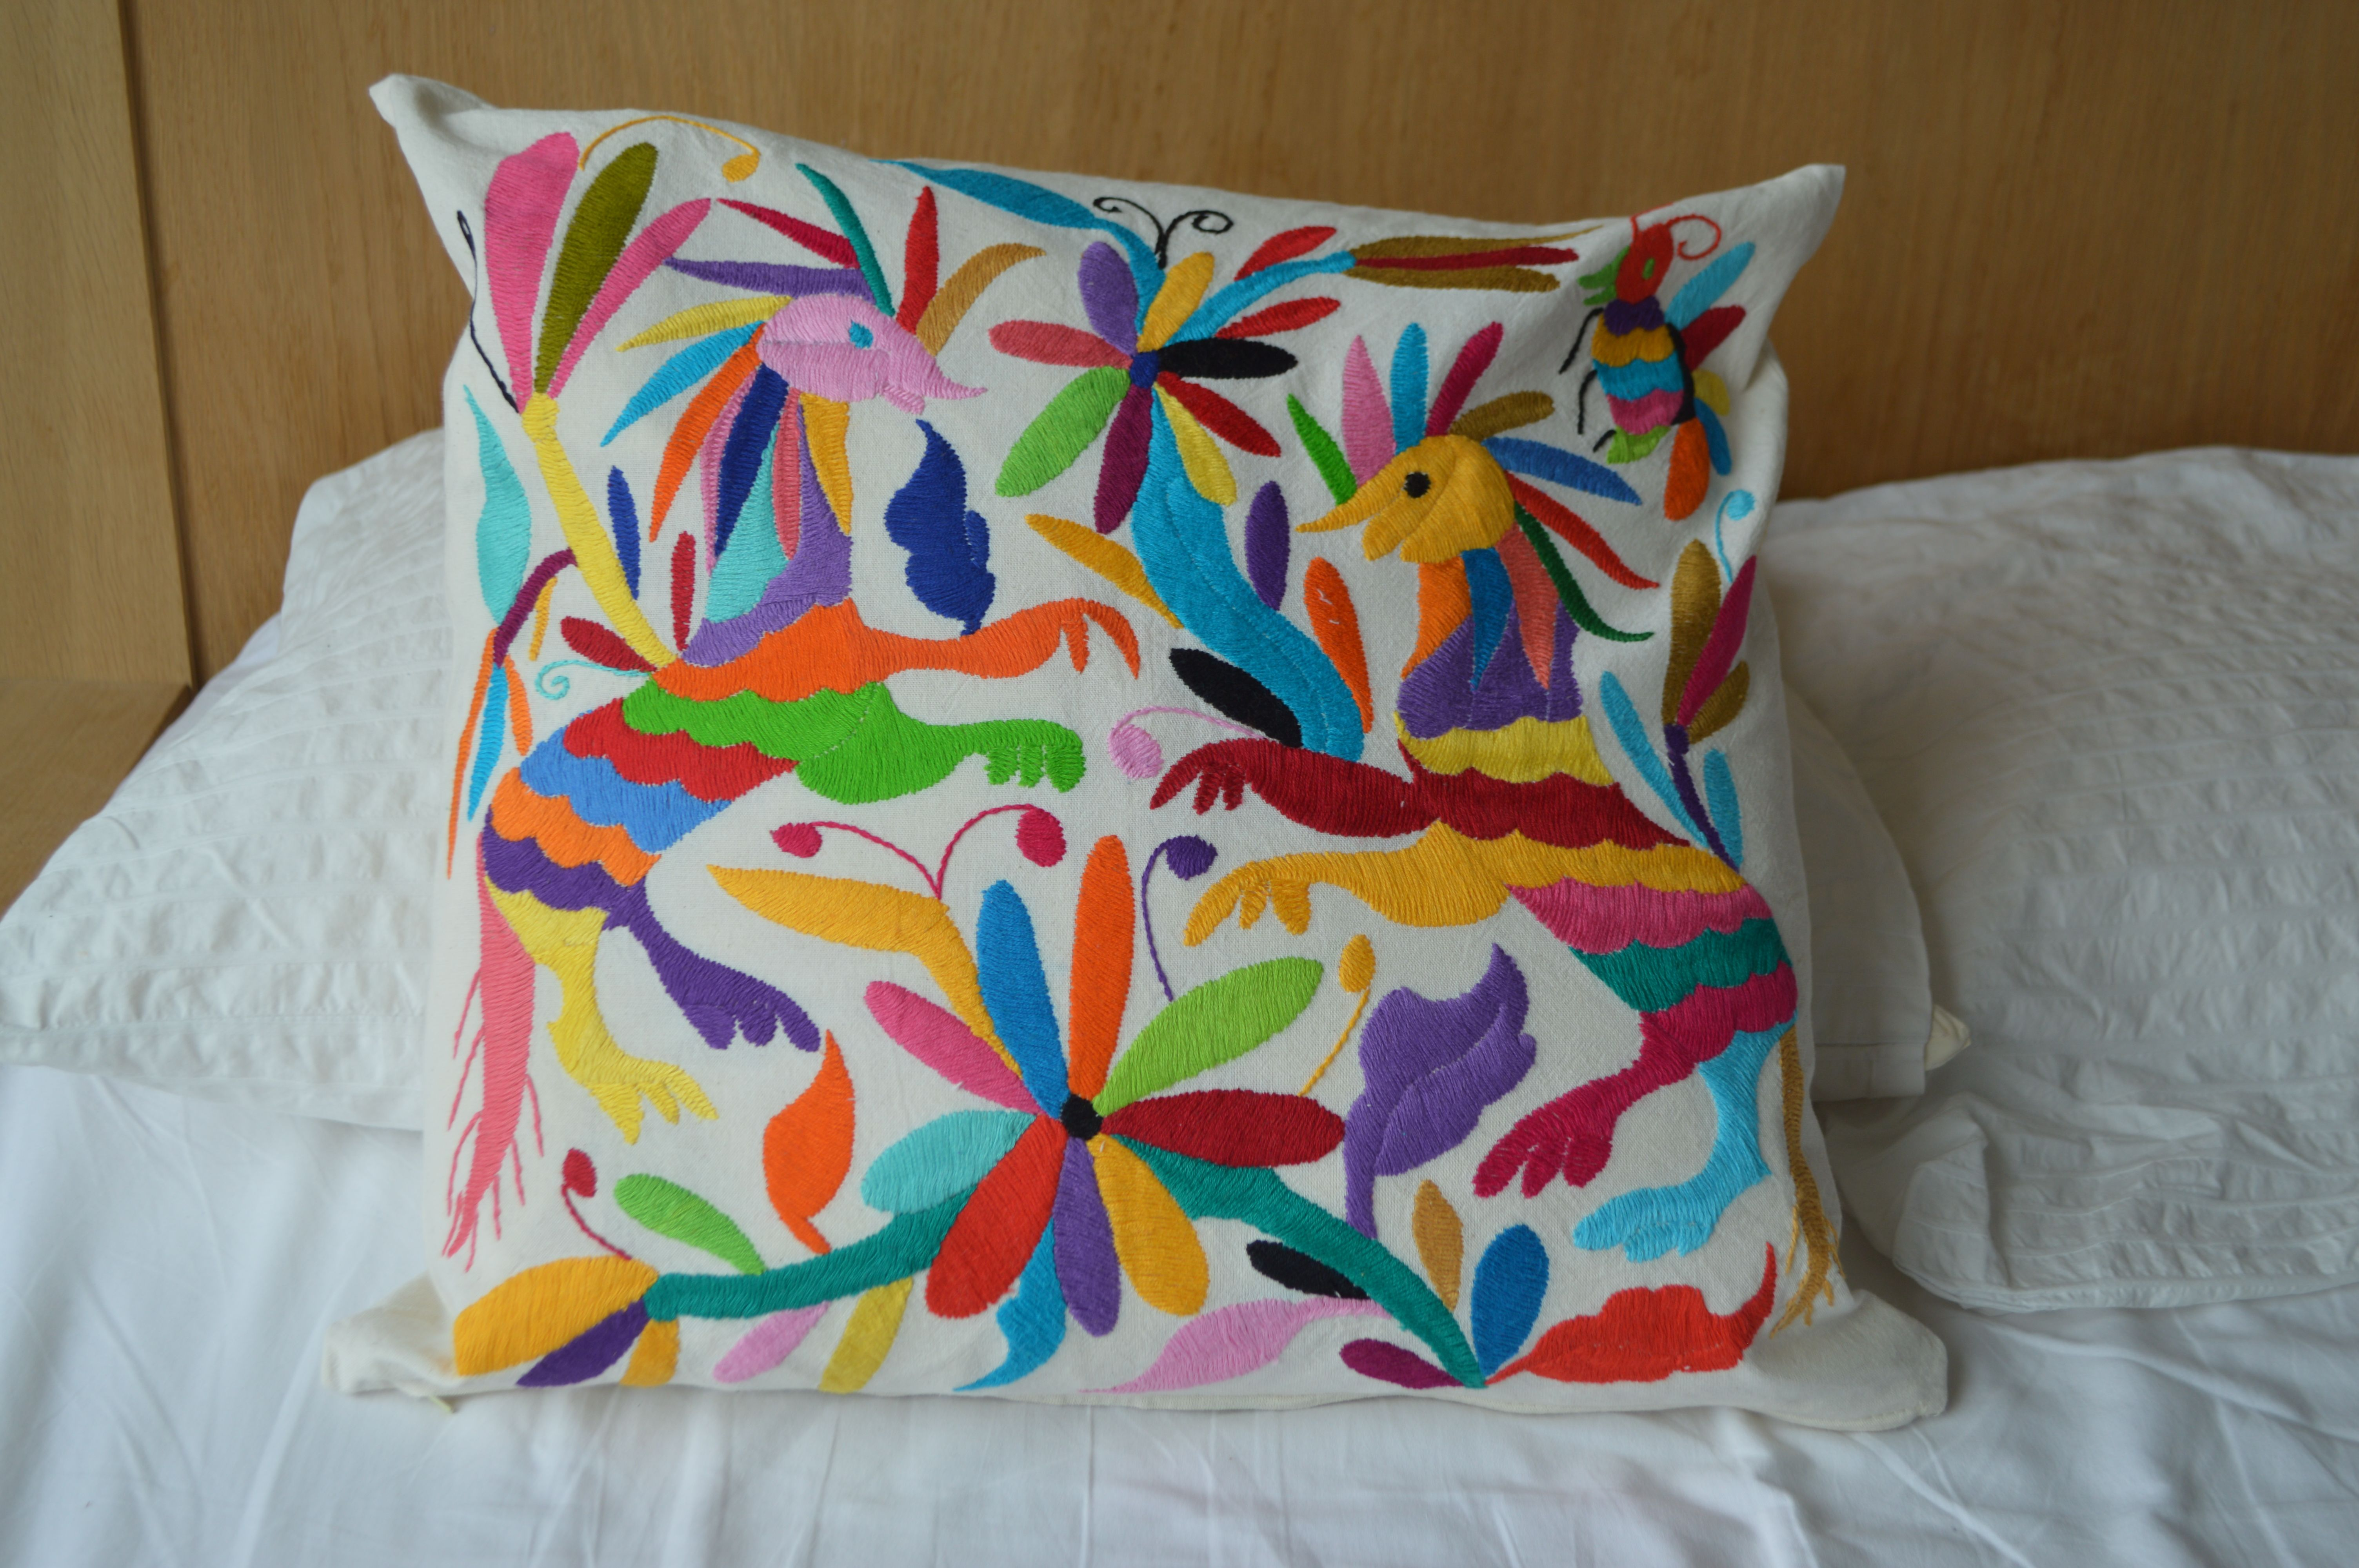 kiwi pillow thalia by prints products spun just like polyester case square